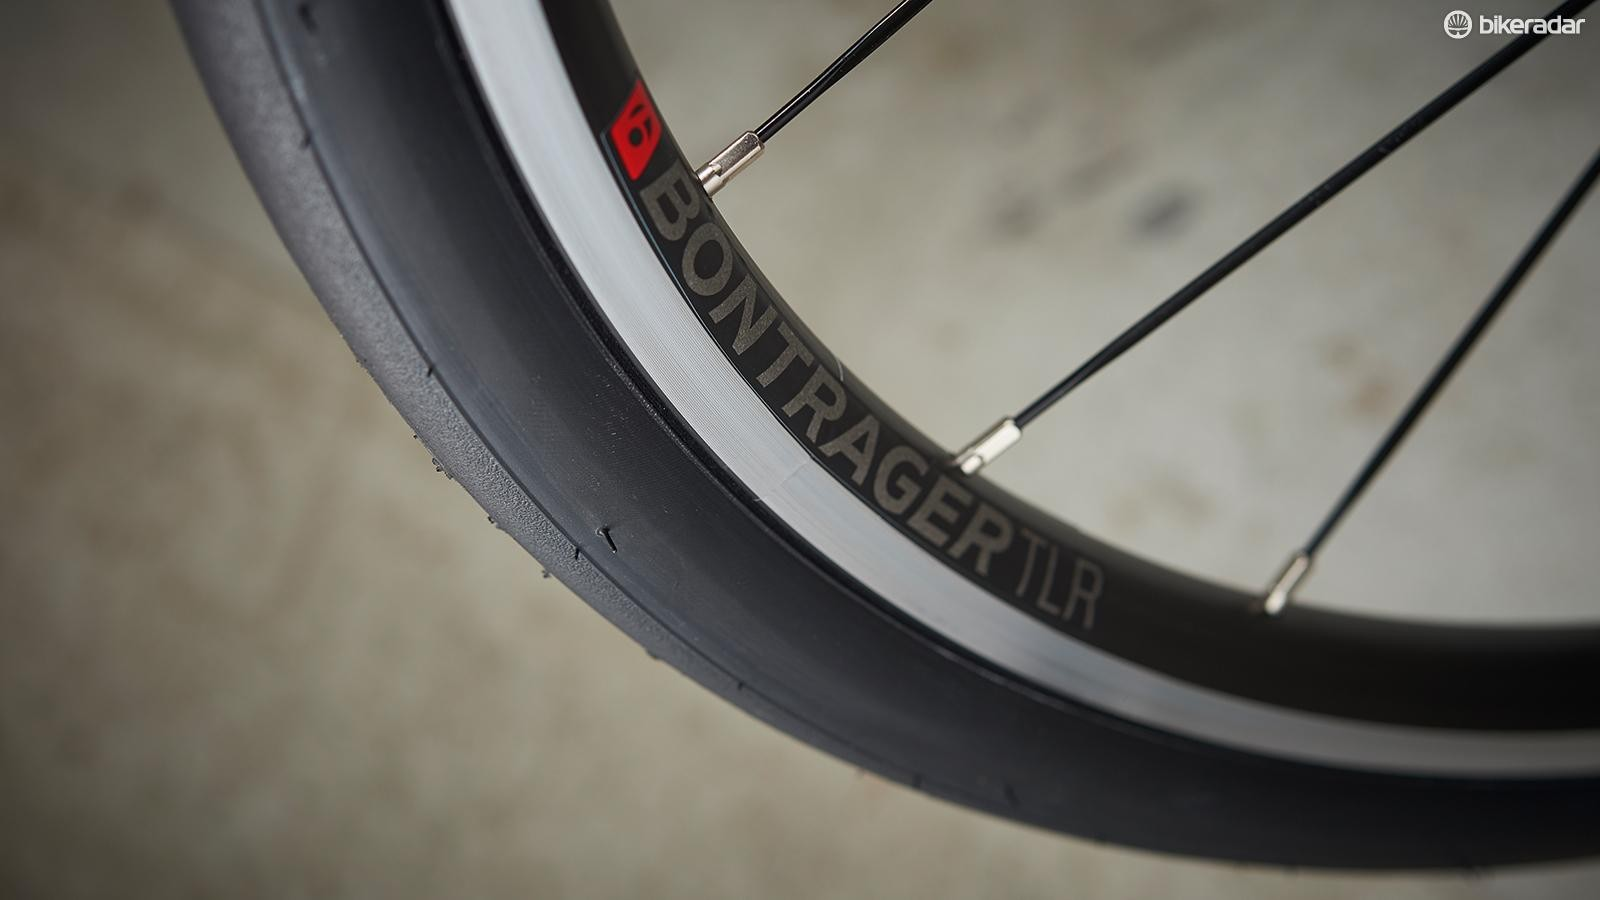 The Bontrager rims and 28mm tyres also contribute to the Domane's smooth ride